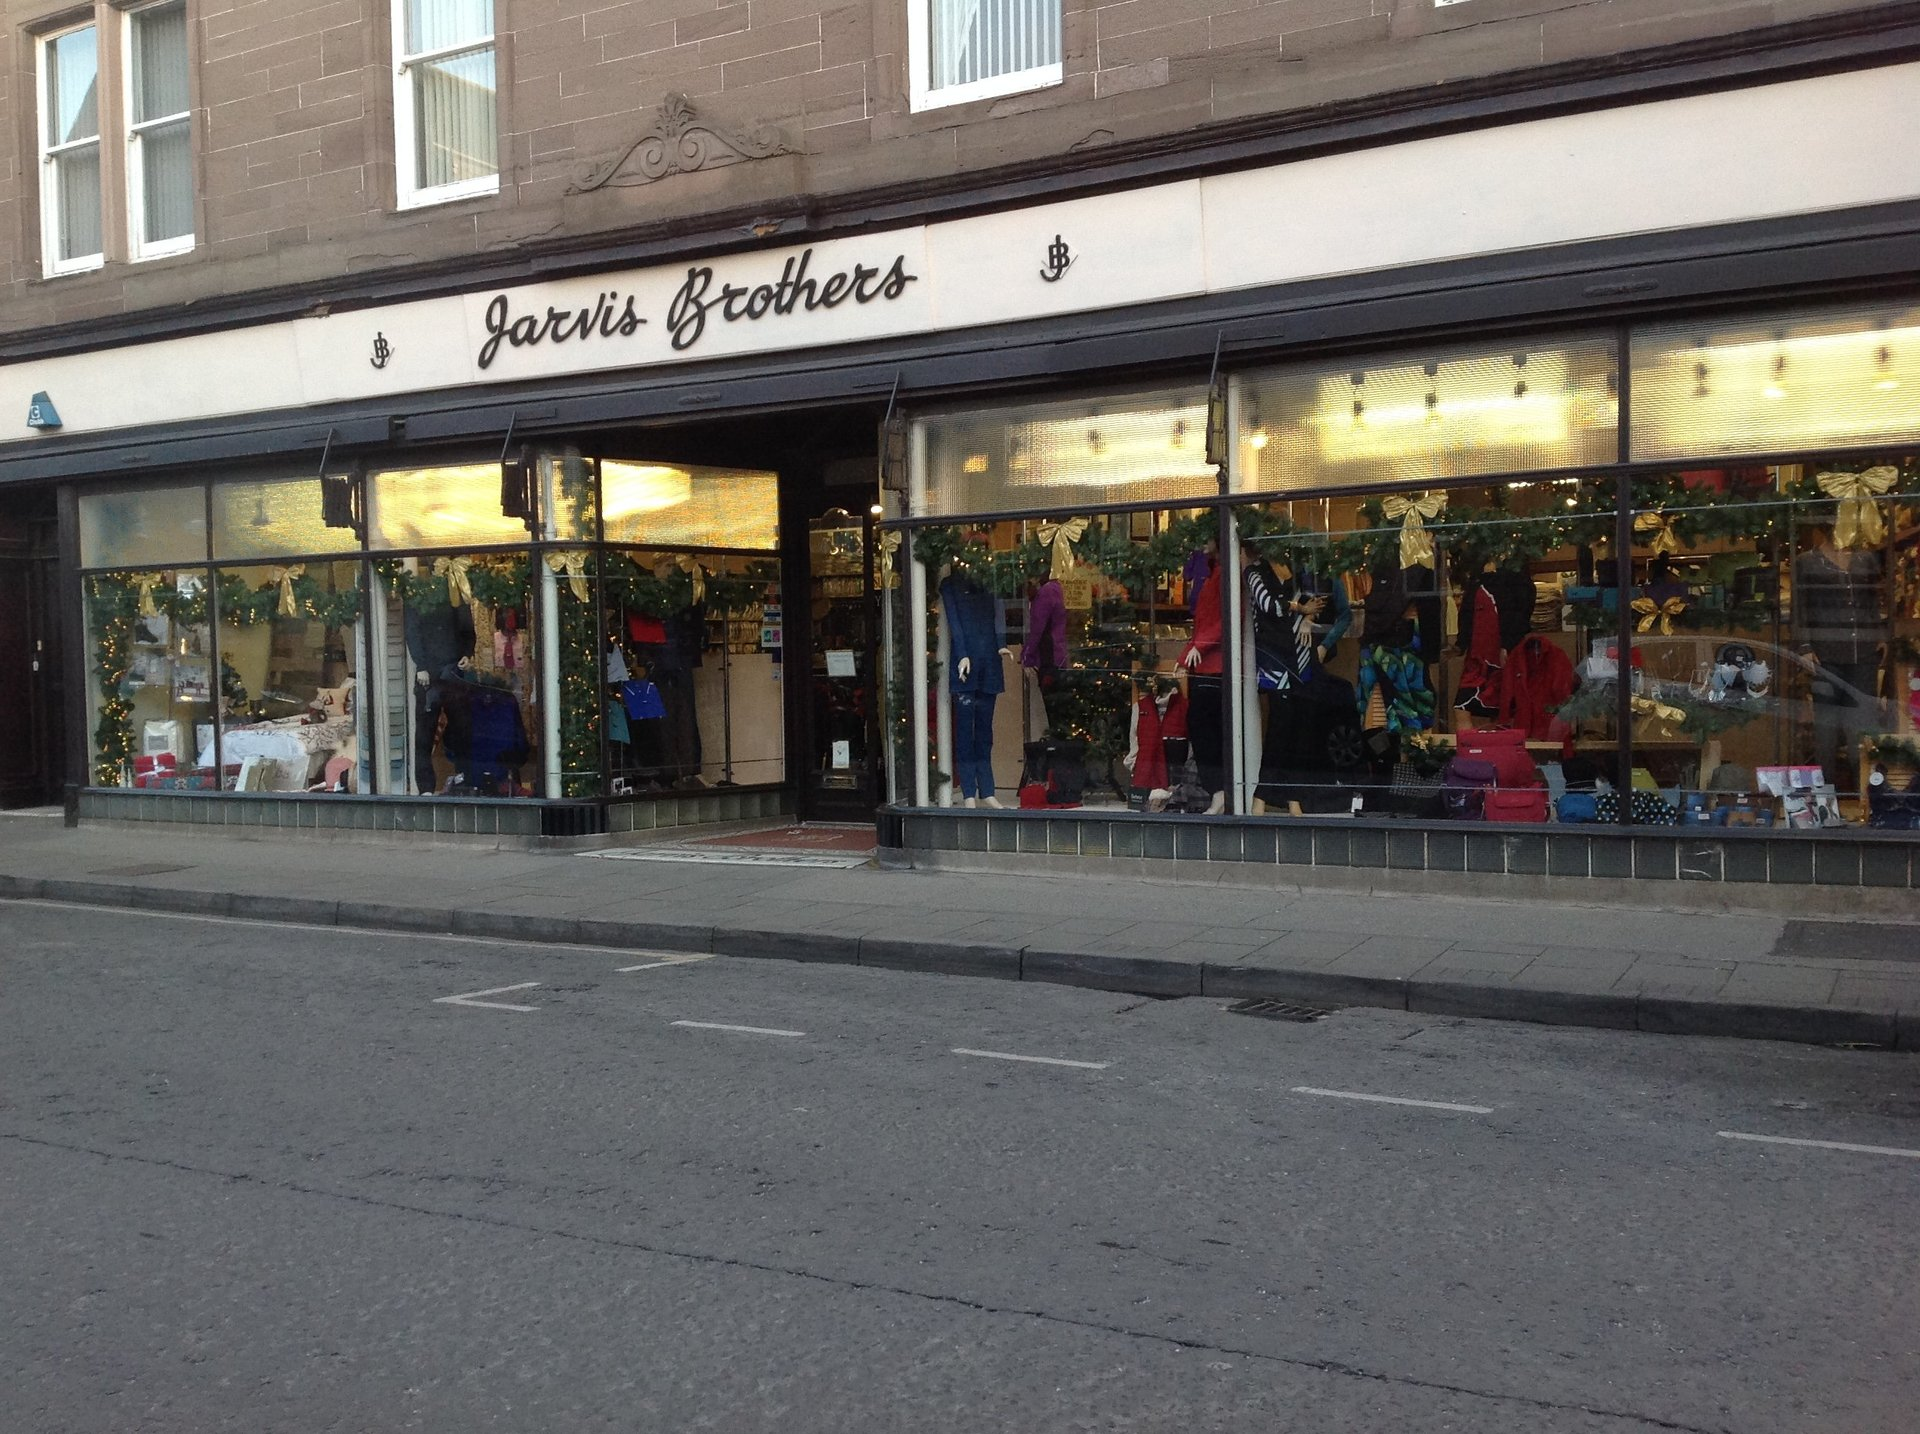 Jarvis brothers store front in Forfar.